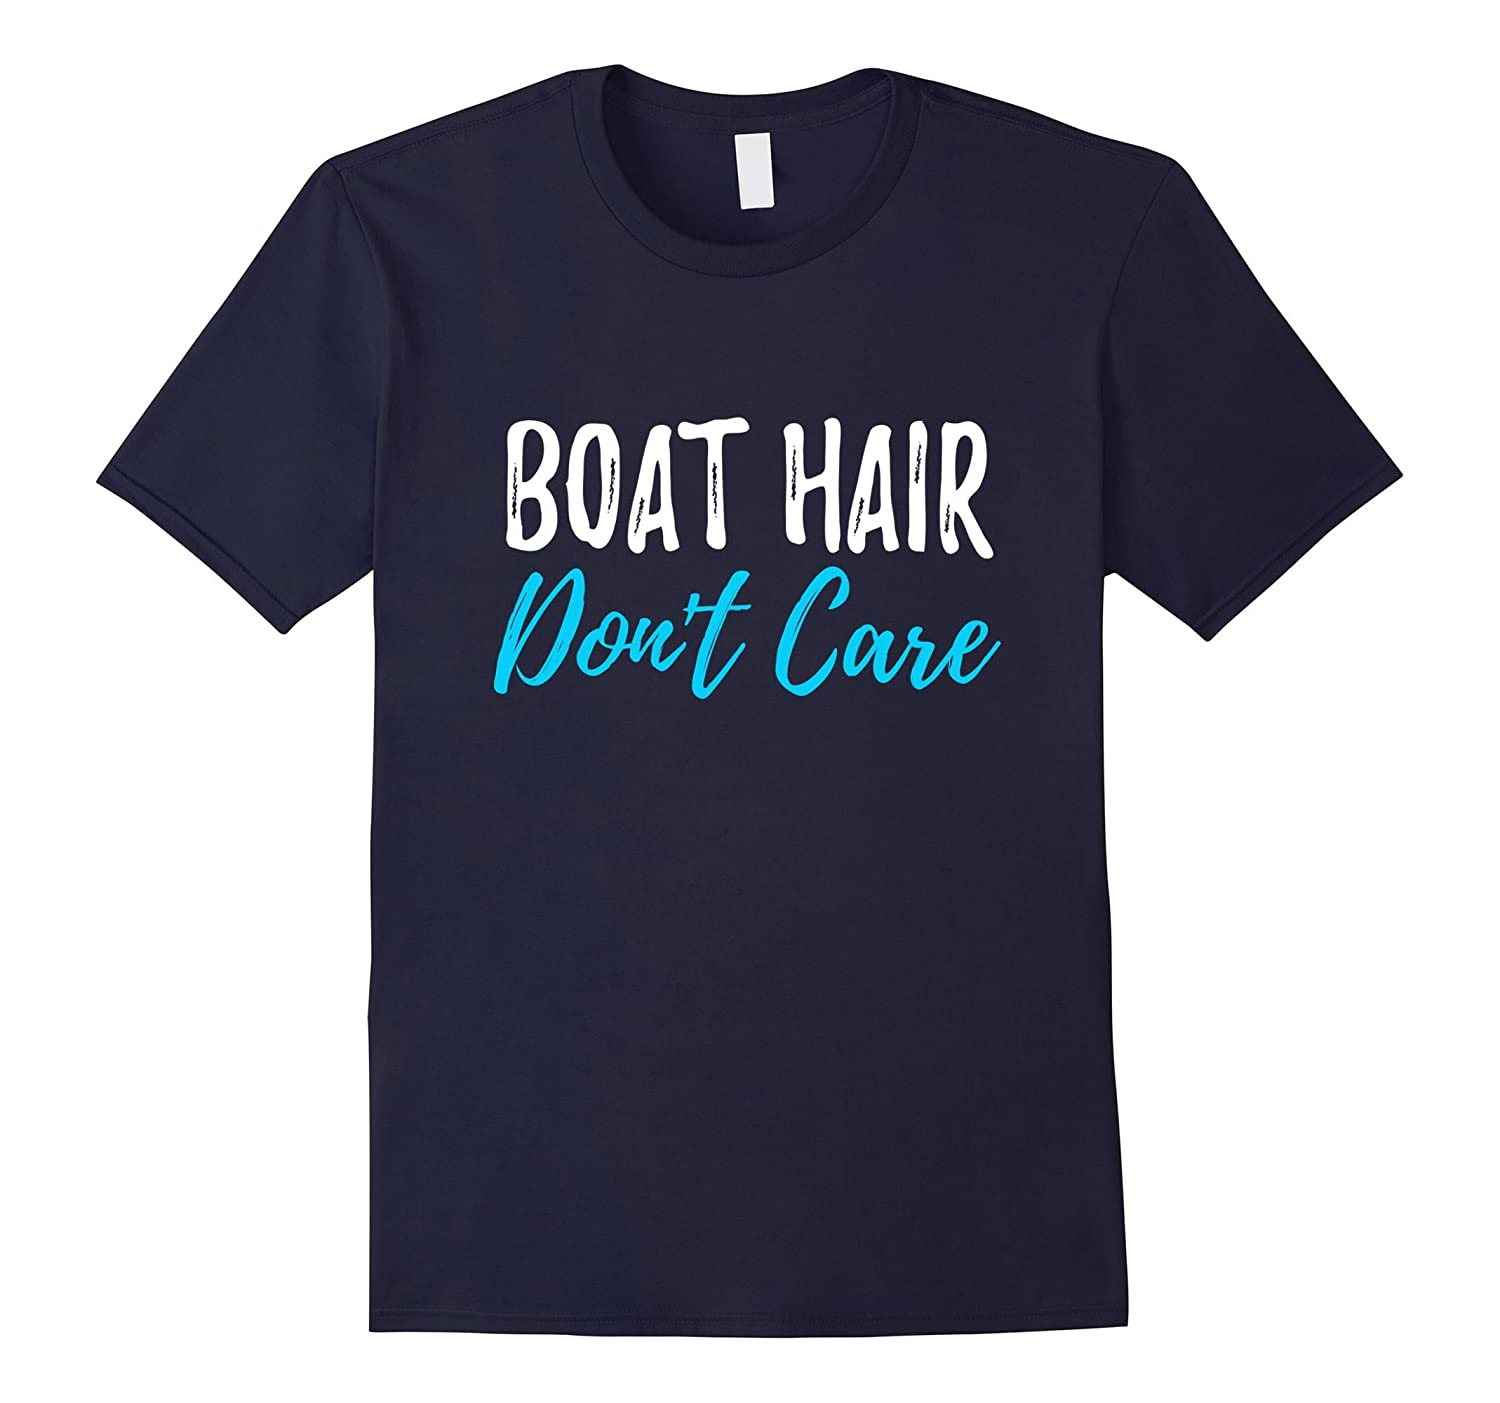 Boat Hair Don't Care T-Shirt Funny Gift for Boating Sailing-BN